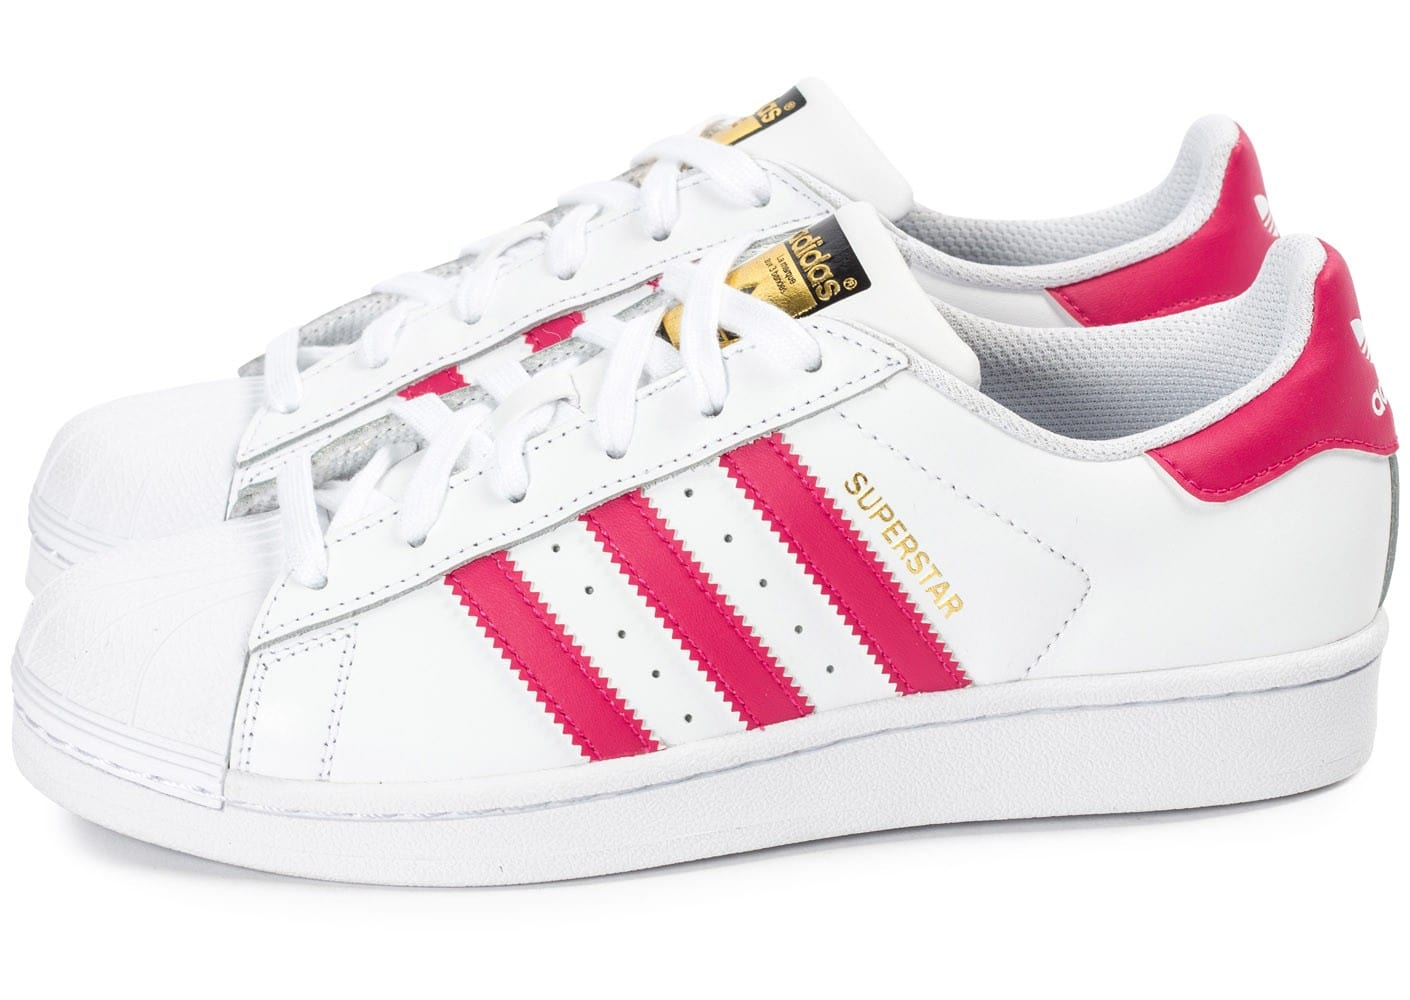 adidas superstar foundation junior blanche et rose chaussures adidas chausport. Black Bedroom Furniture Sets. Home Design Ideas